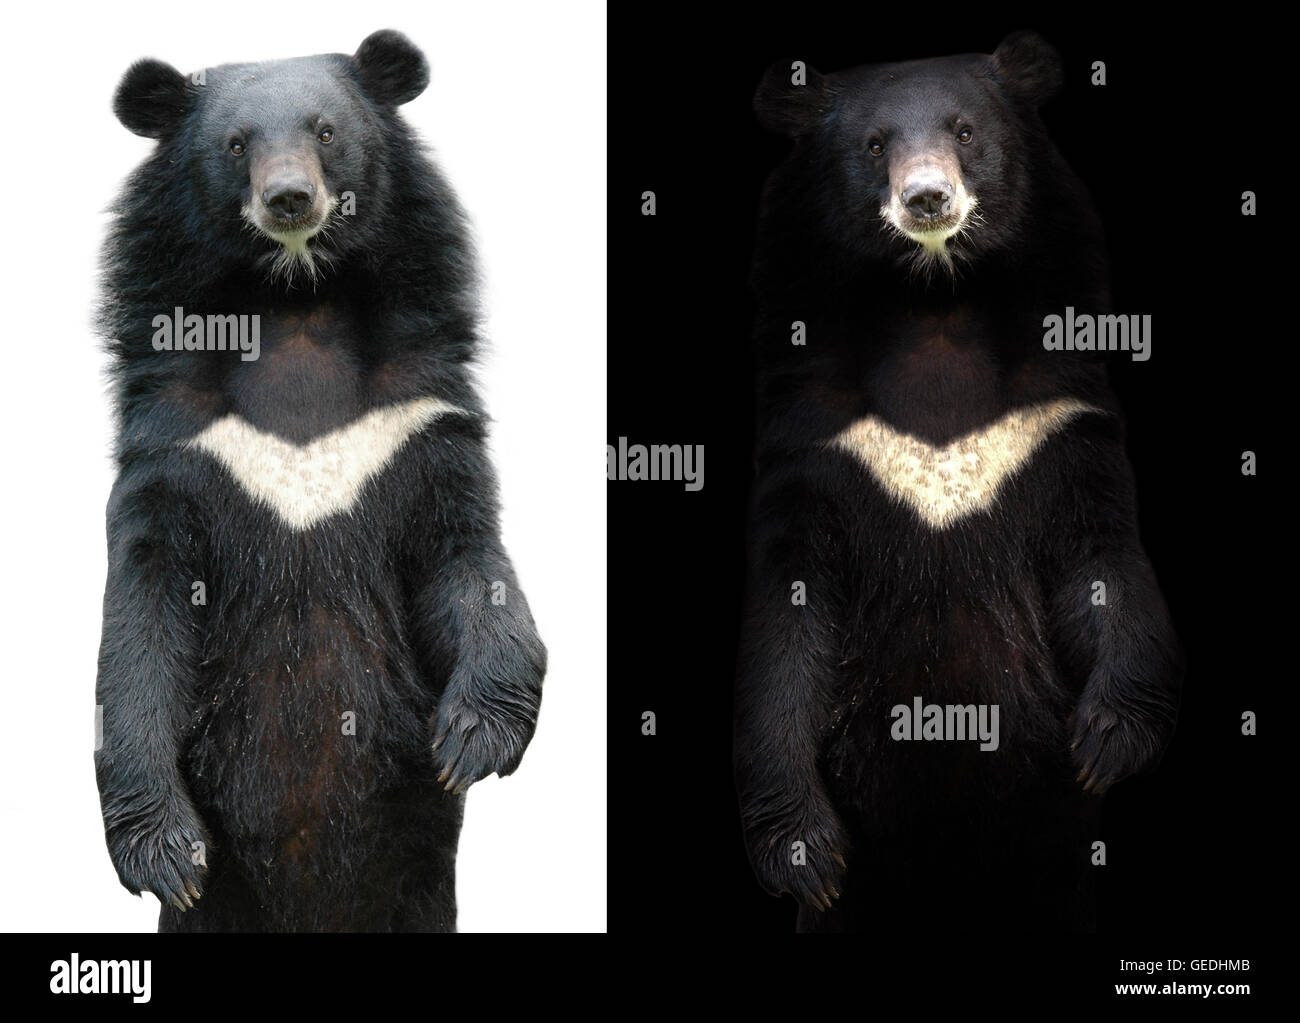 asiatic black bear in dark background and asiatic black bear on white - Stock Image